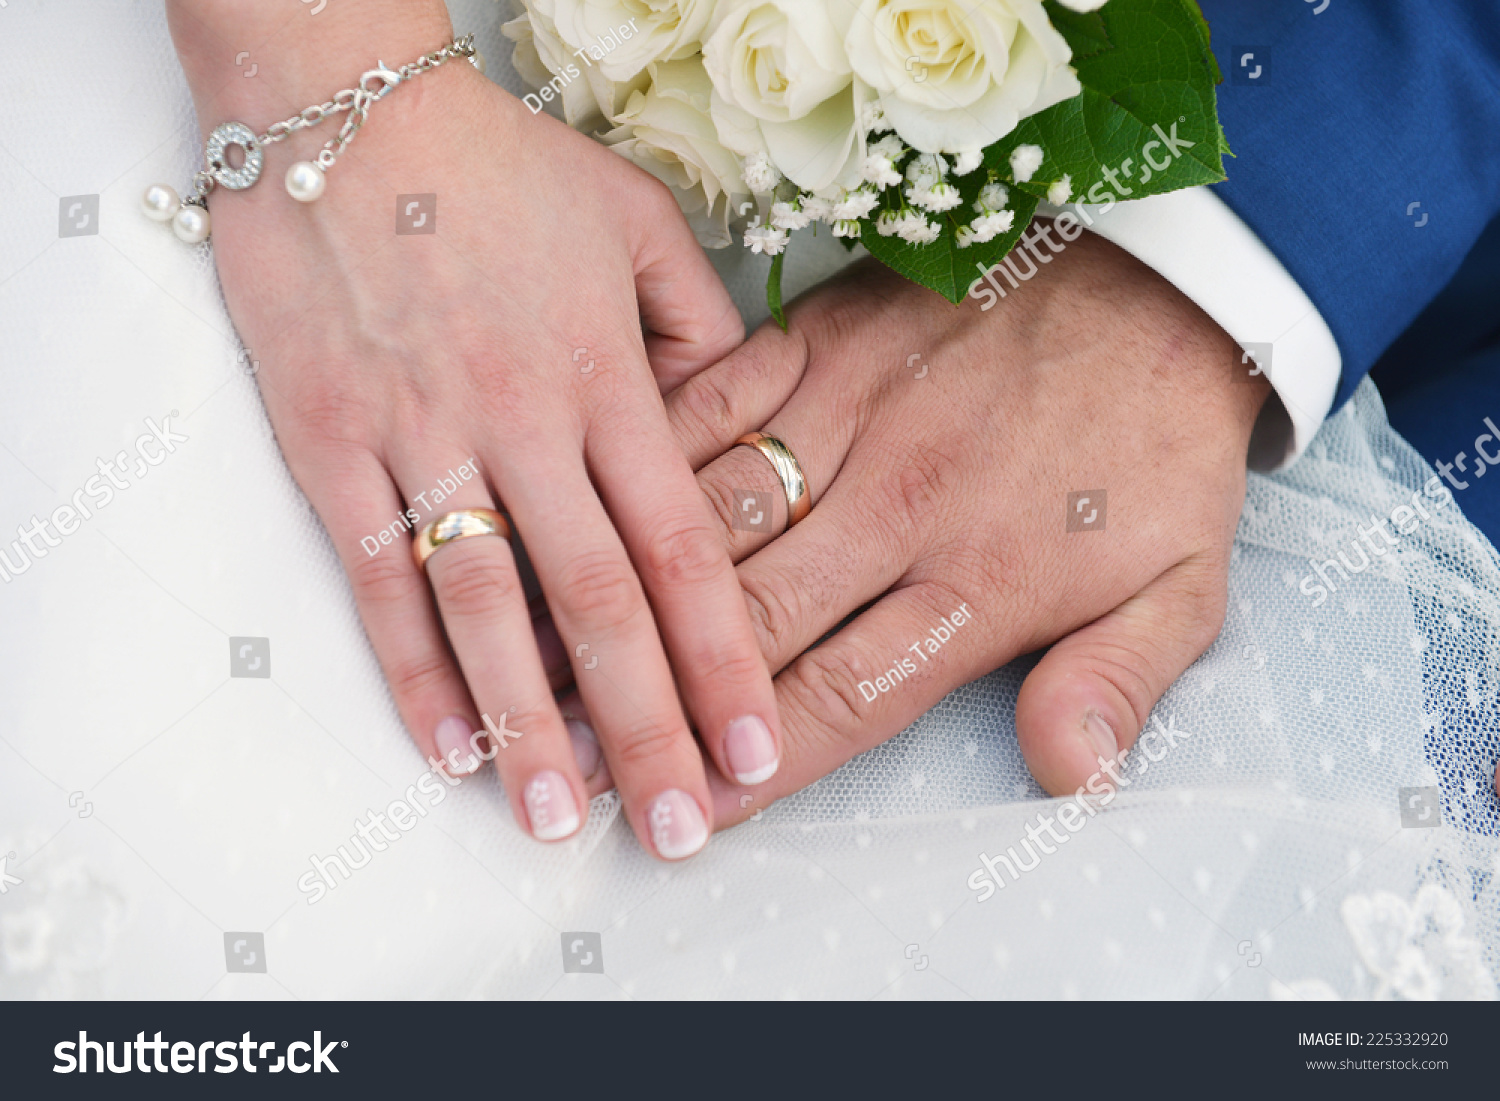 Royalty-free Two hands with wedding rings and flowers #225332920 ...